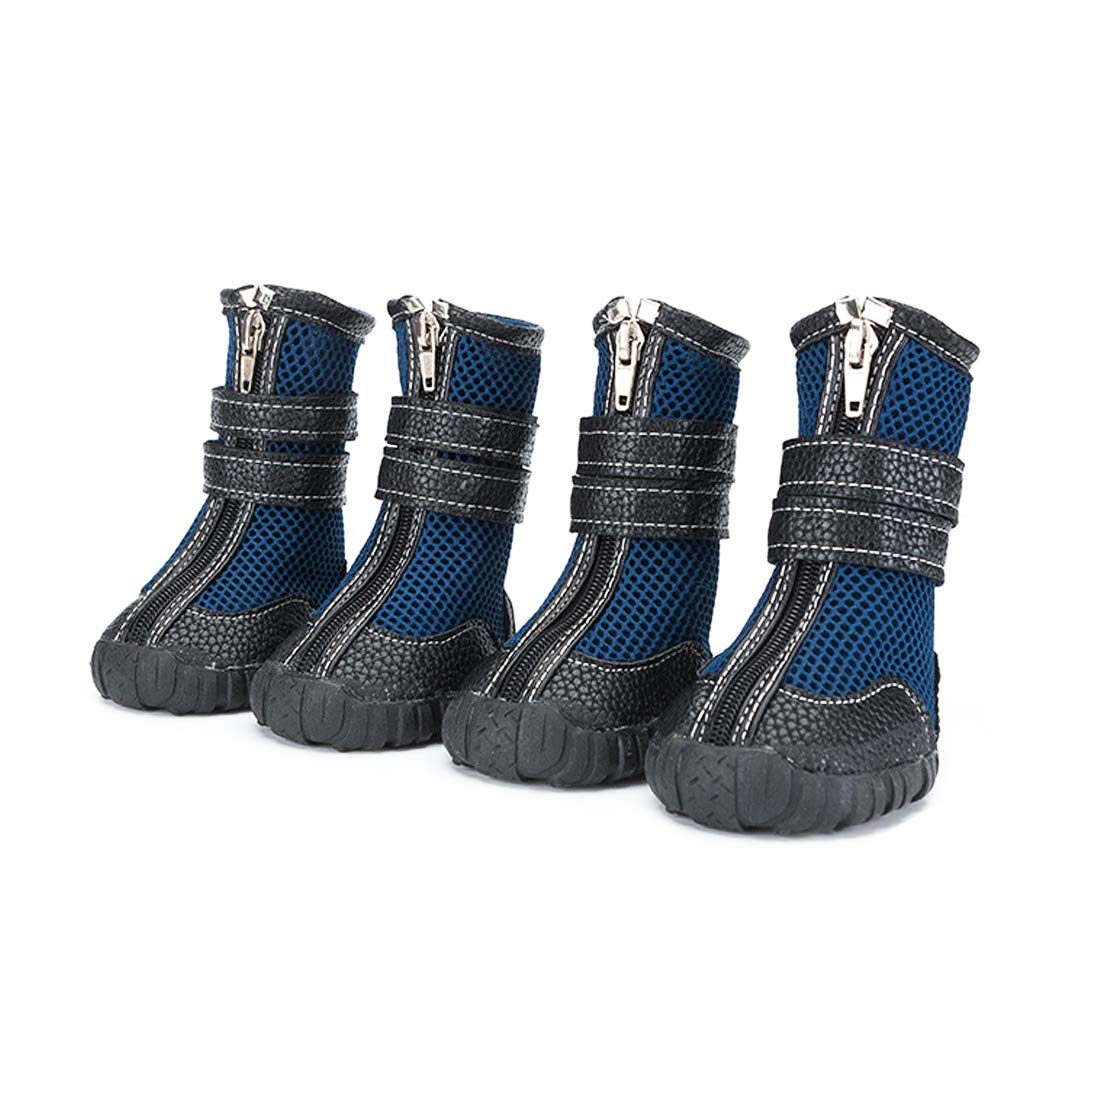 Only Pet Dogs Boots Winter Hiking Shoes XXL, Non Slip Mesh Booties with Rubber Sole, Cool Breathable Large Boots for Sled Dog Golden Retriever Shepherd(Blue Size 11 W2.4 x L3.15) by Only Pet